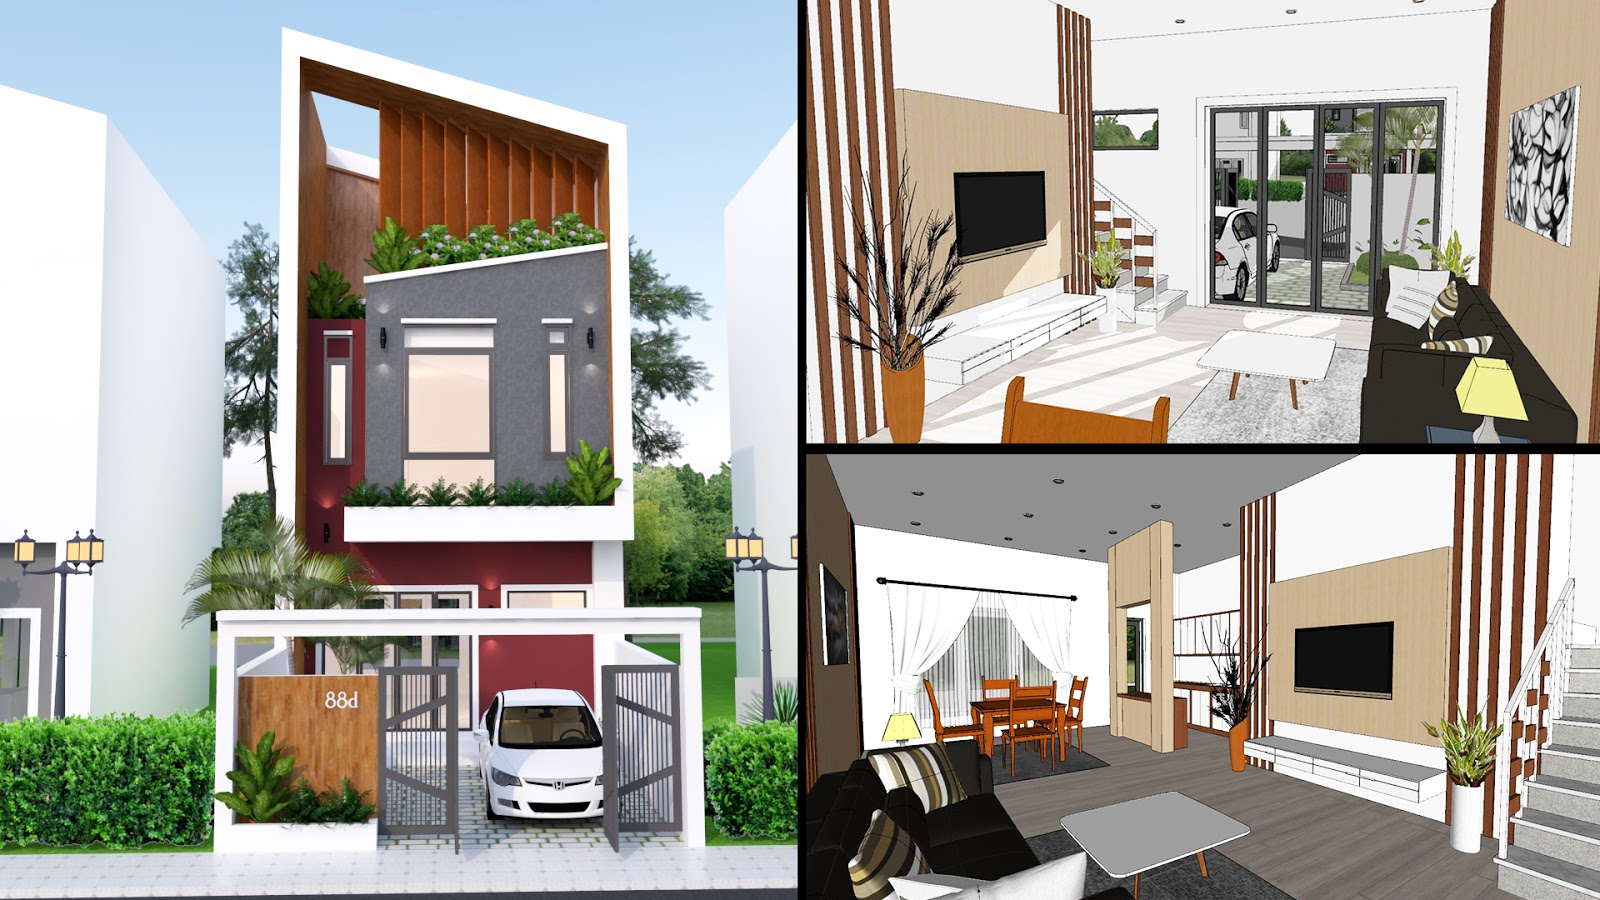 Sketchup Small House Design Plan 5.6x8 with Interior 3 ...